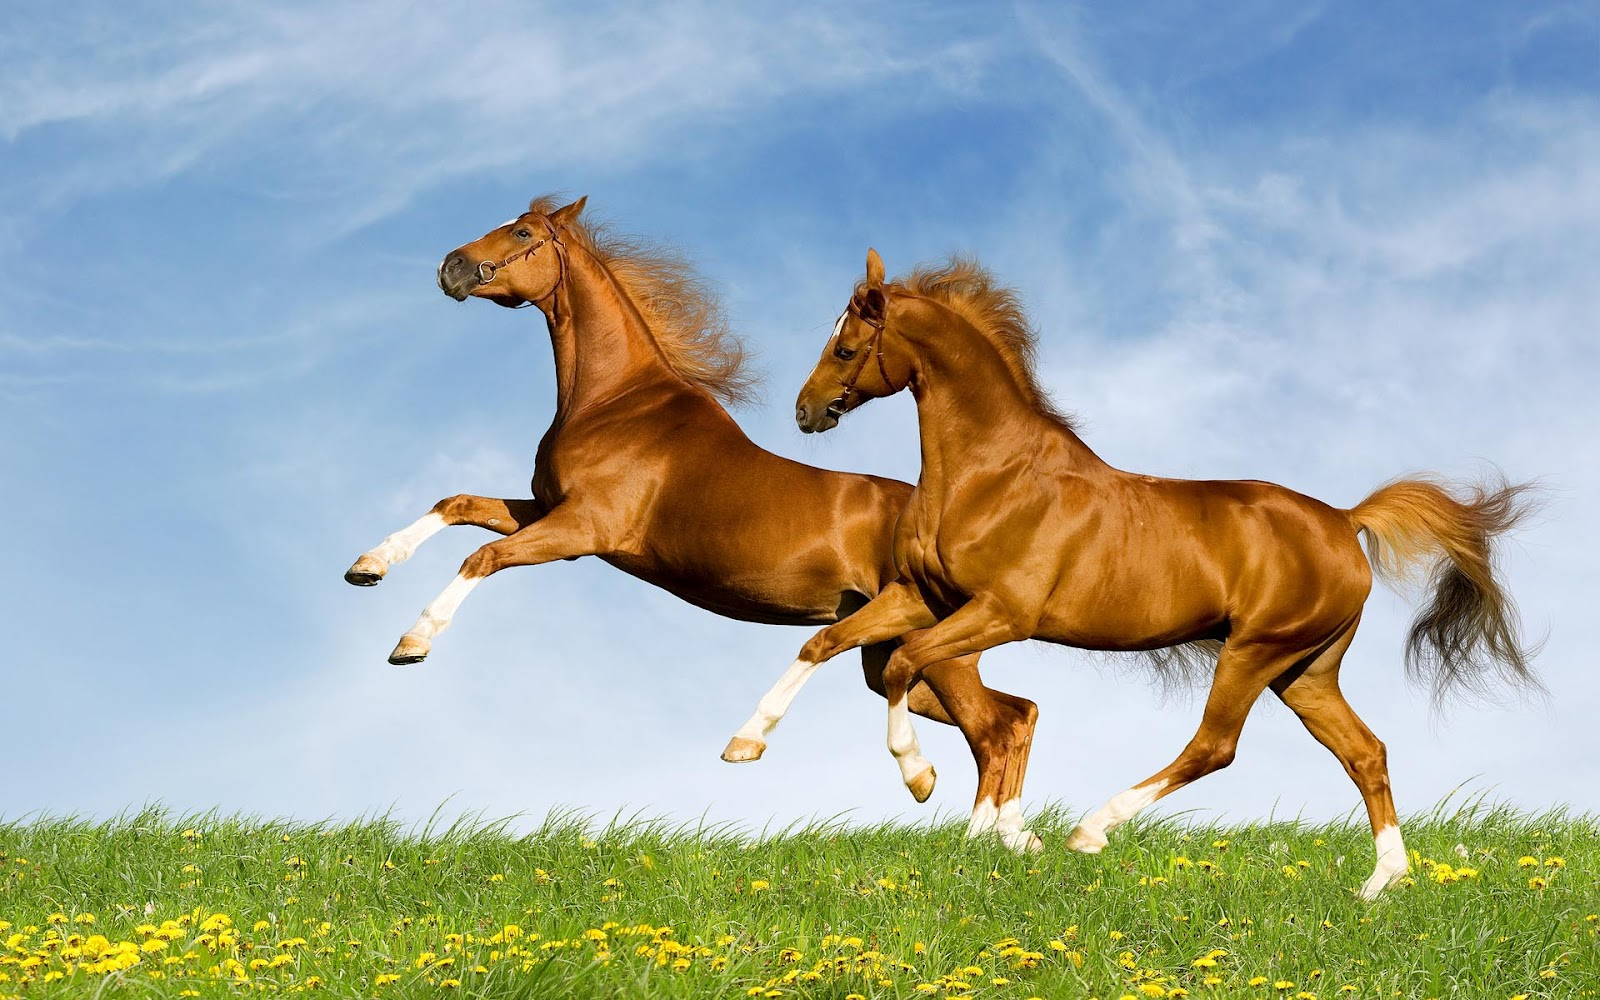 Actresses Hd Wallpapers Horse Hd Wallpapers-5707